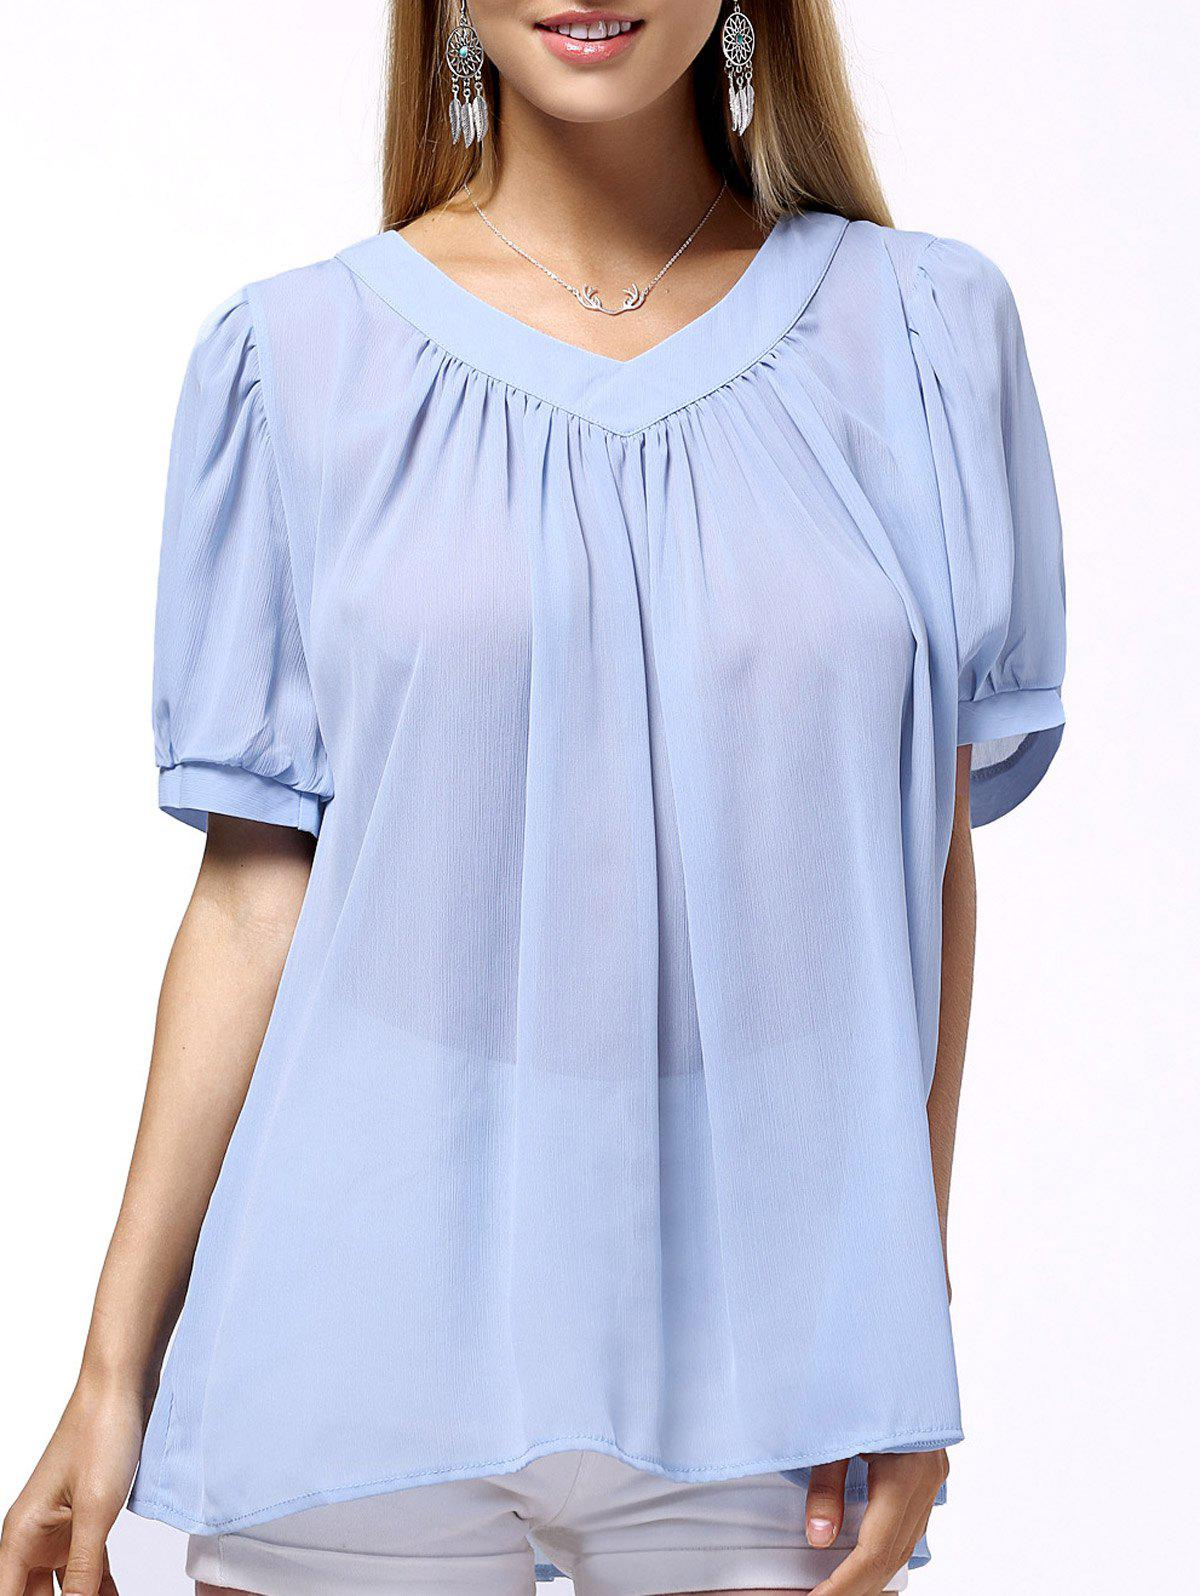 Frilled Pure Color Chiffon Women's Blouse